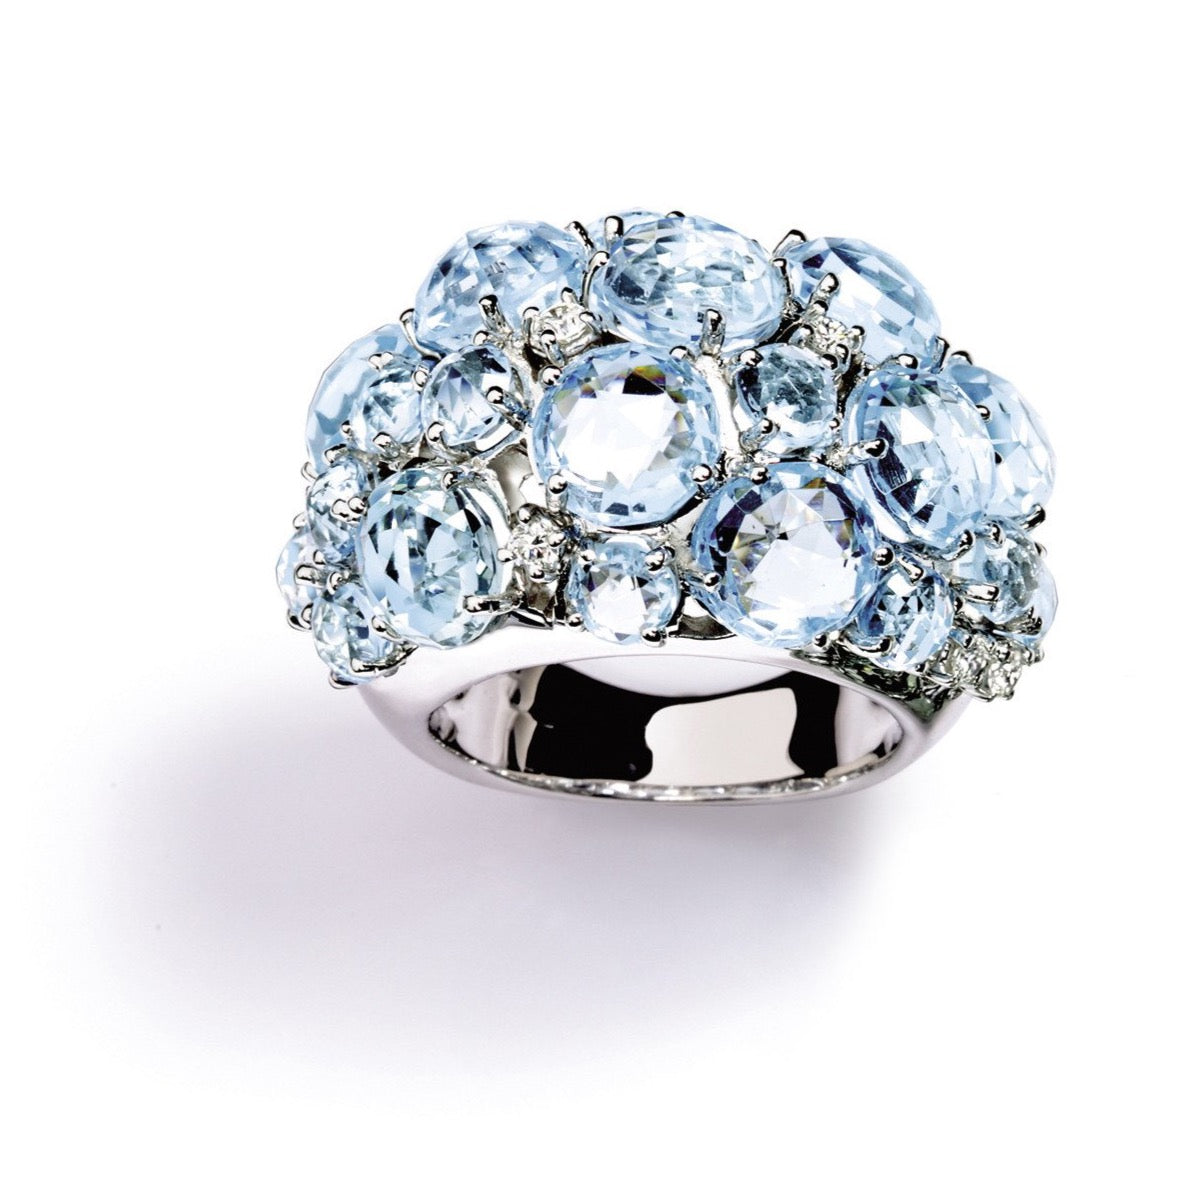 A & Furst - Bouquet - Dome Ring with Blue Topaz and Diamonds, 18k White Gold.